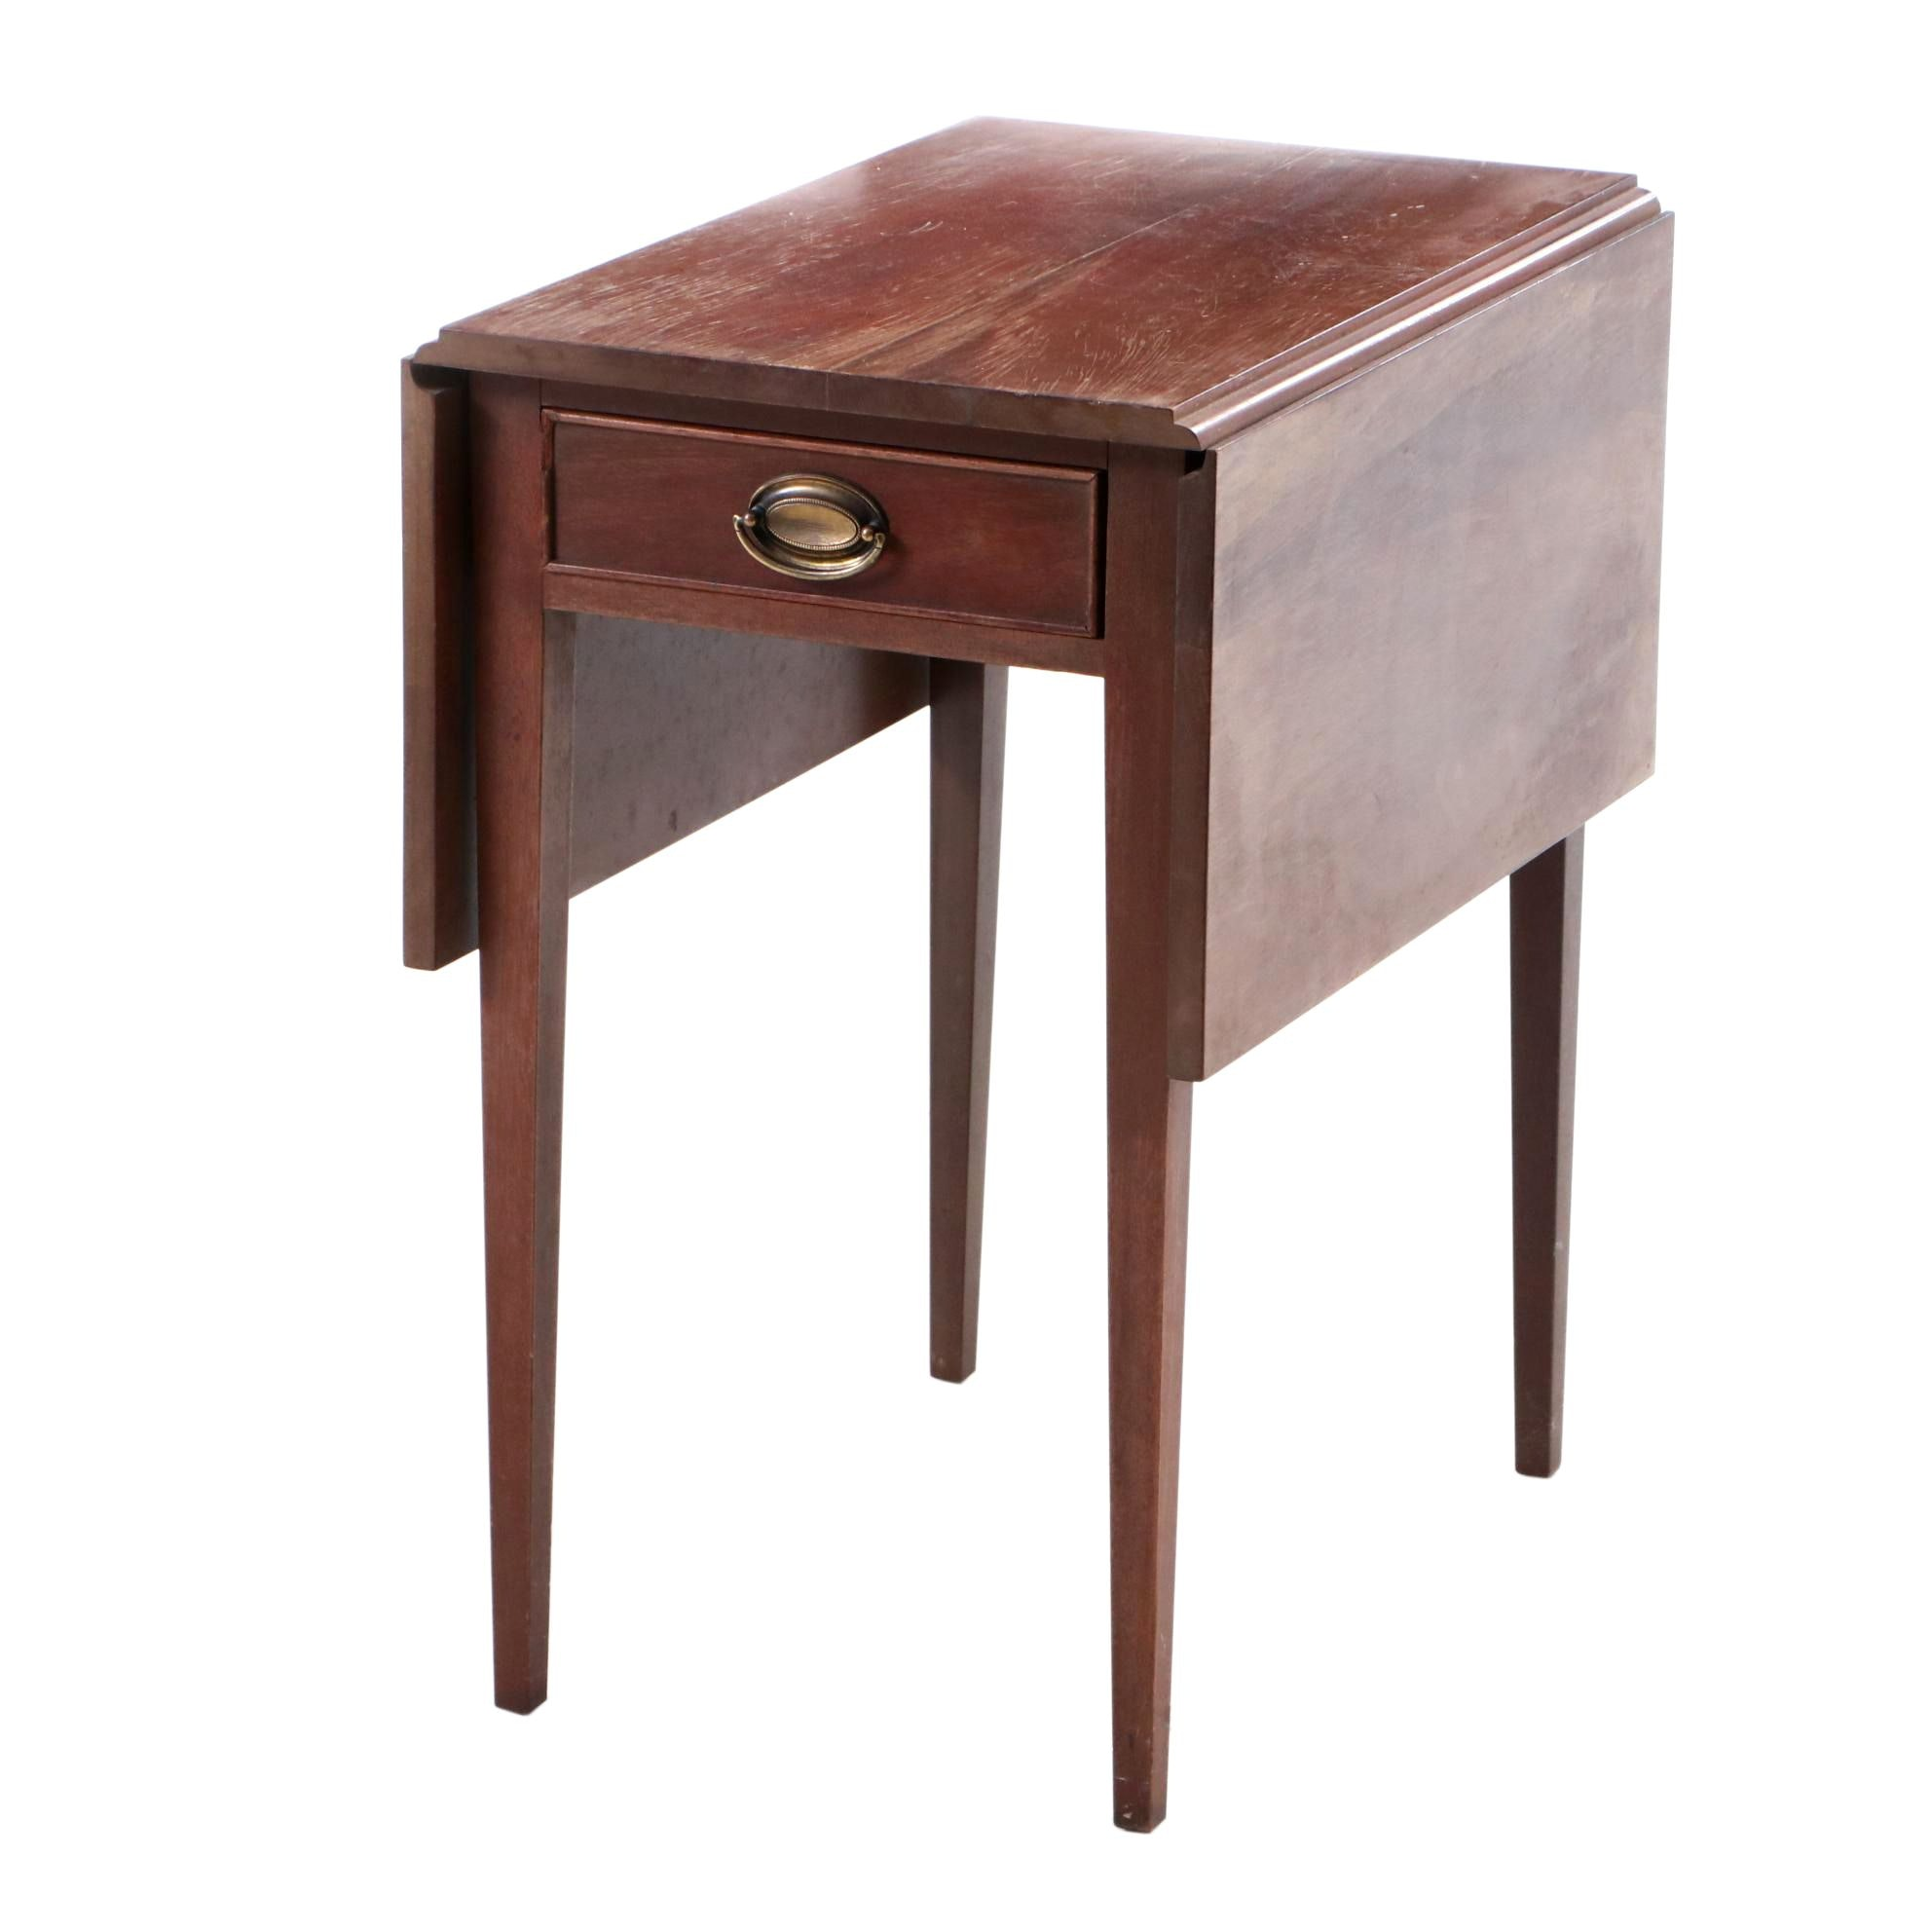 Mid-20th Century Hepplewhite Style Drop Leaf End Table in Mahogany